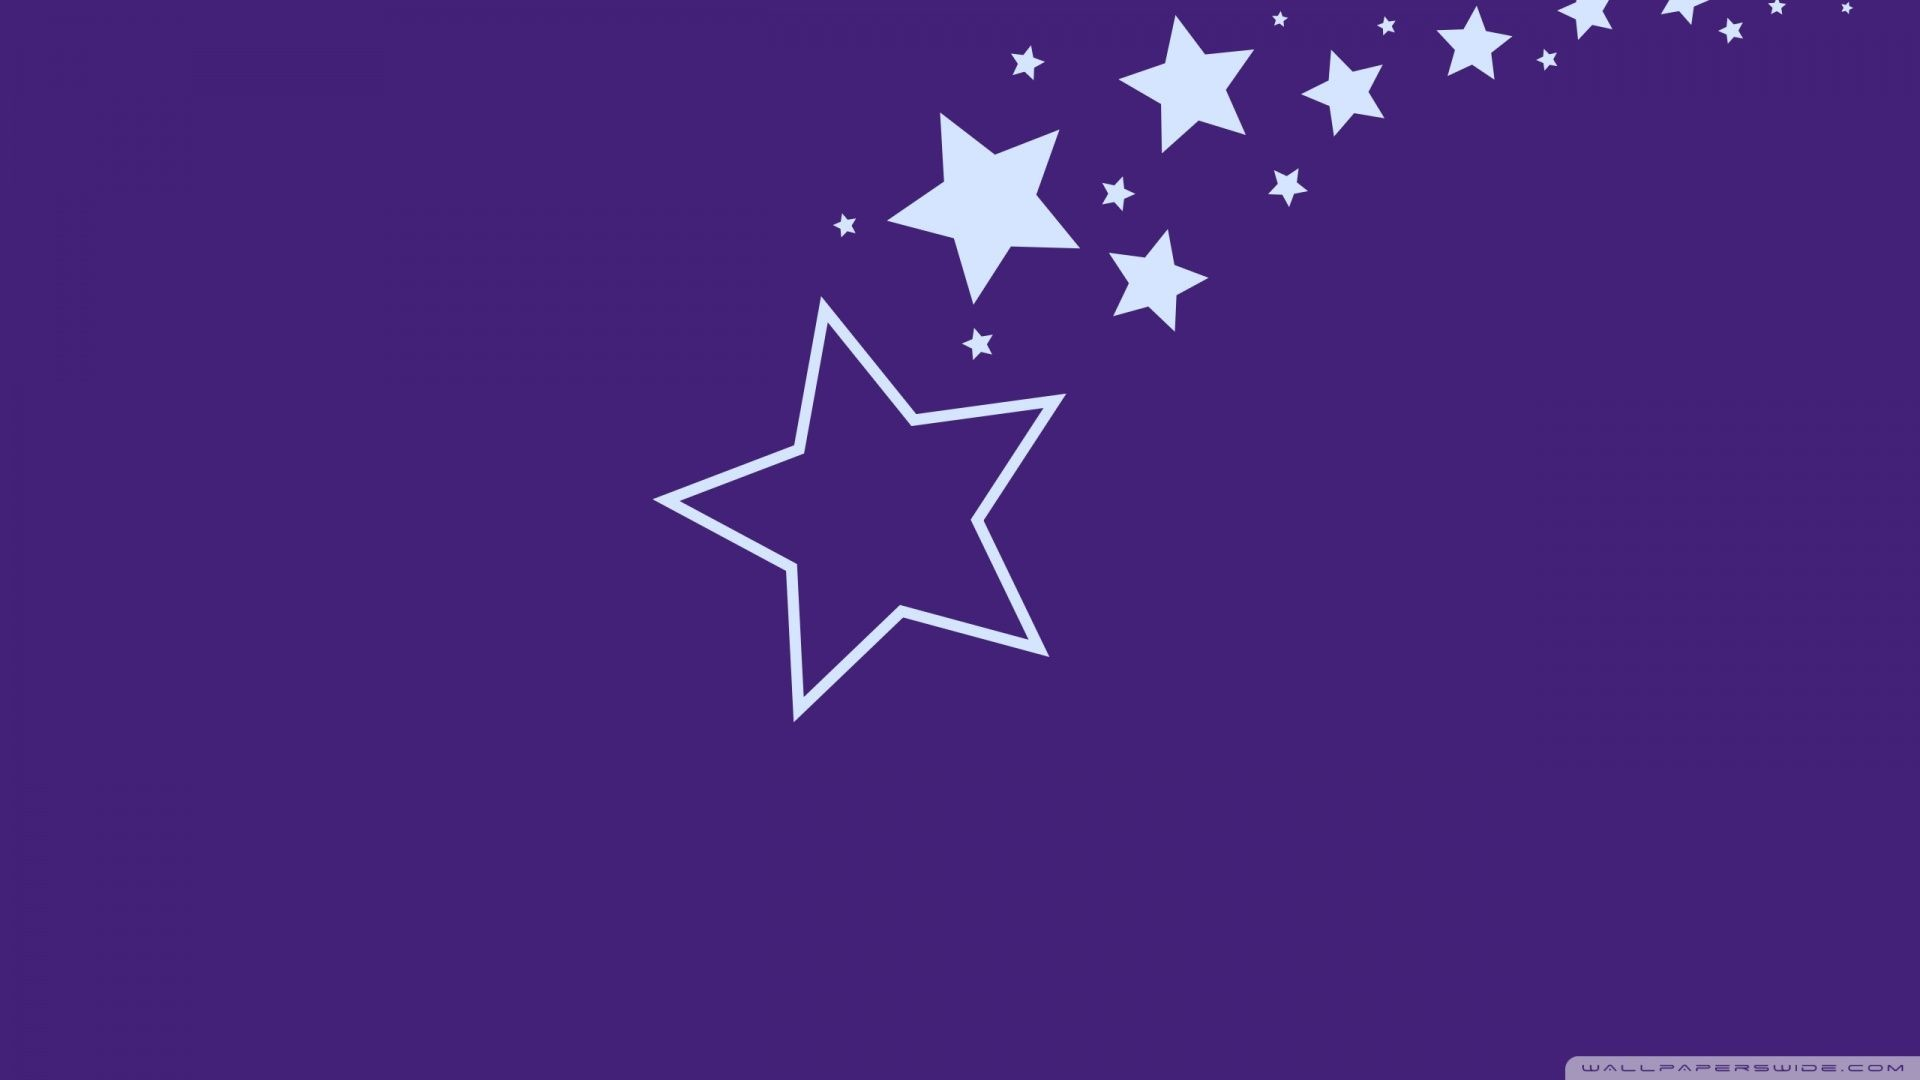 Res: 1920x1080, purple stars | Wallpaper Purple Star Background Pictures